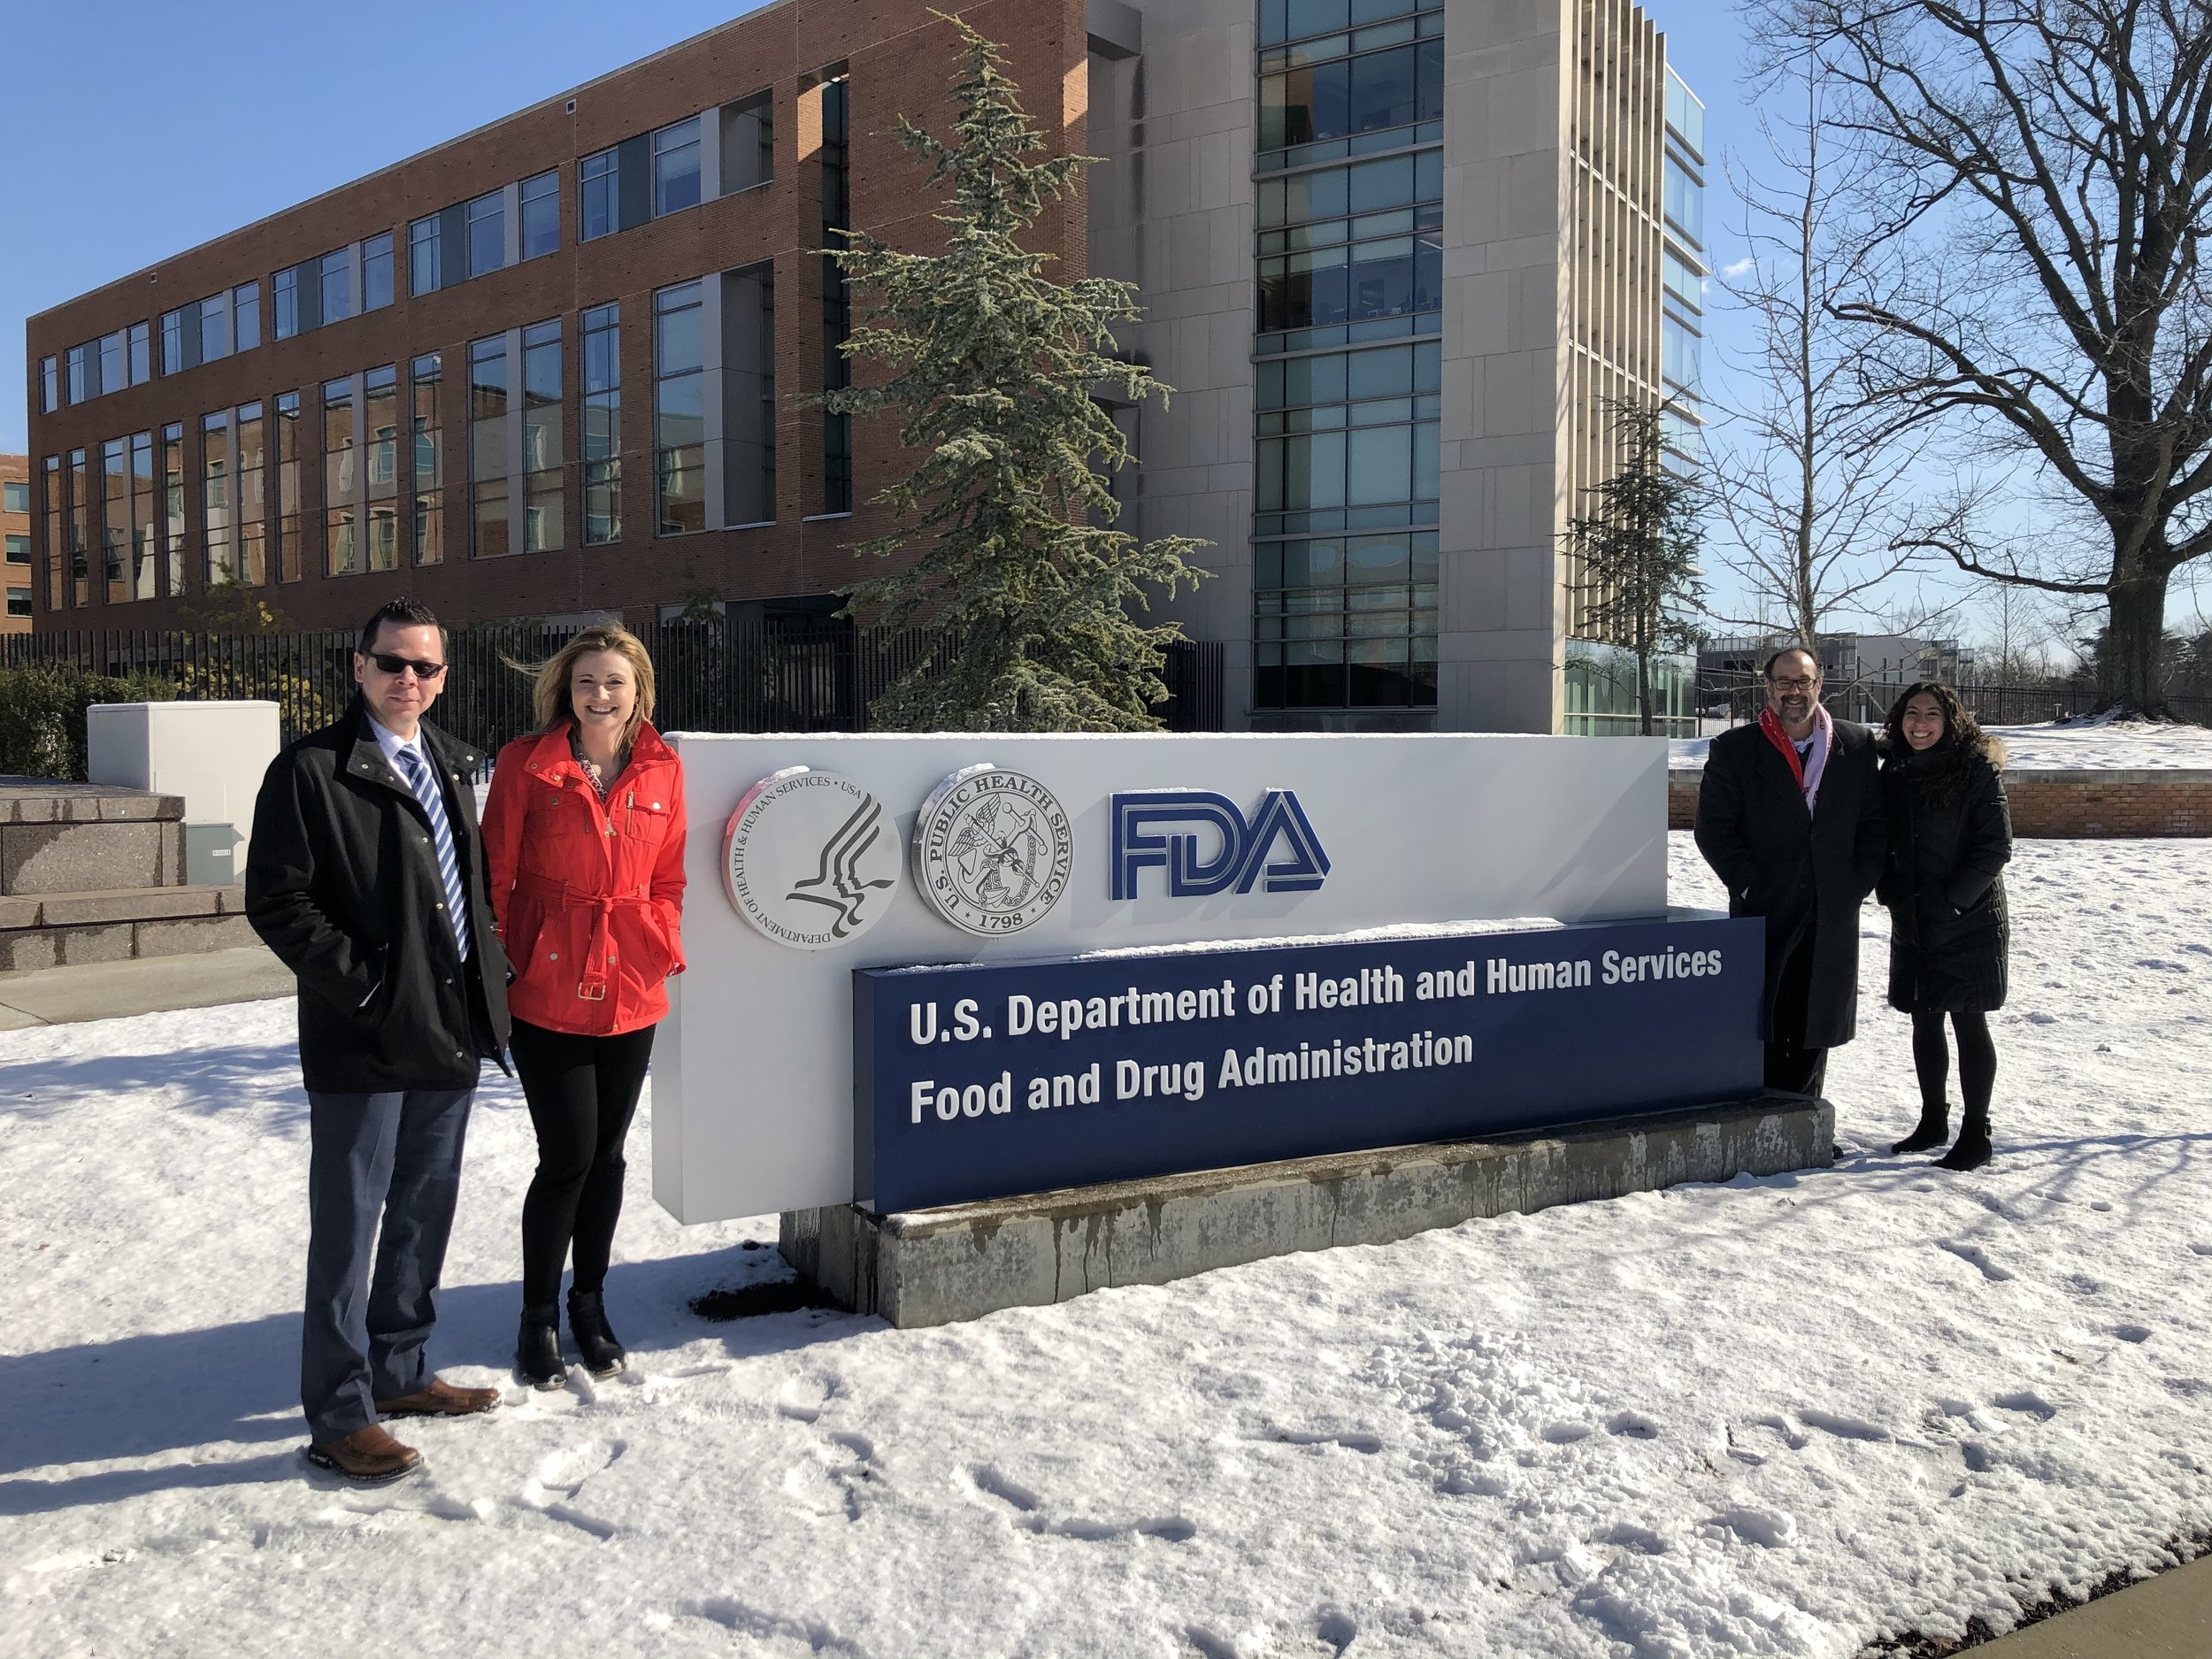 Shawn, Tara, Dr. Bober and Dr. Carroll at the FDA, Jan 30, 2019 to discuss RCDP and PPI-1040 nonclinical development plan.